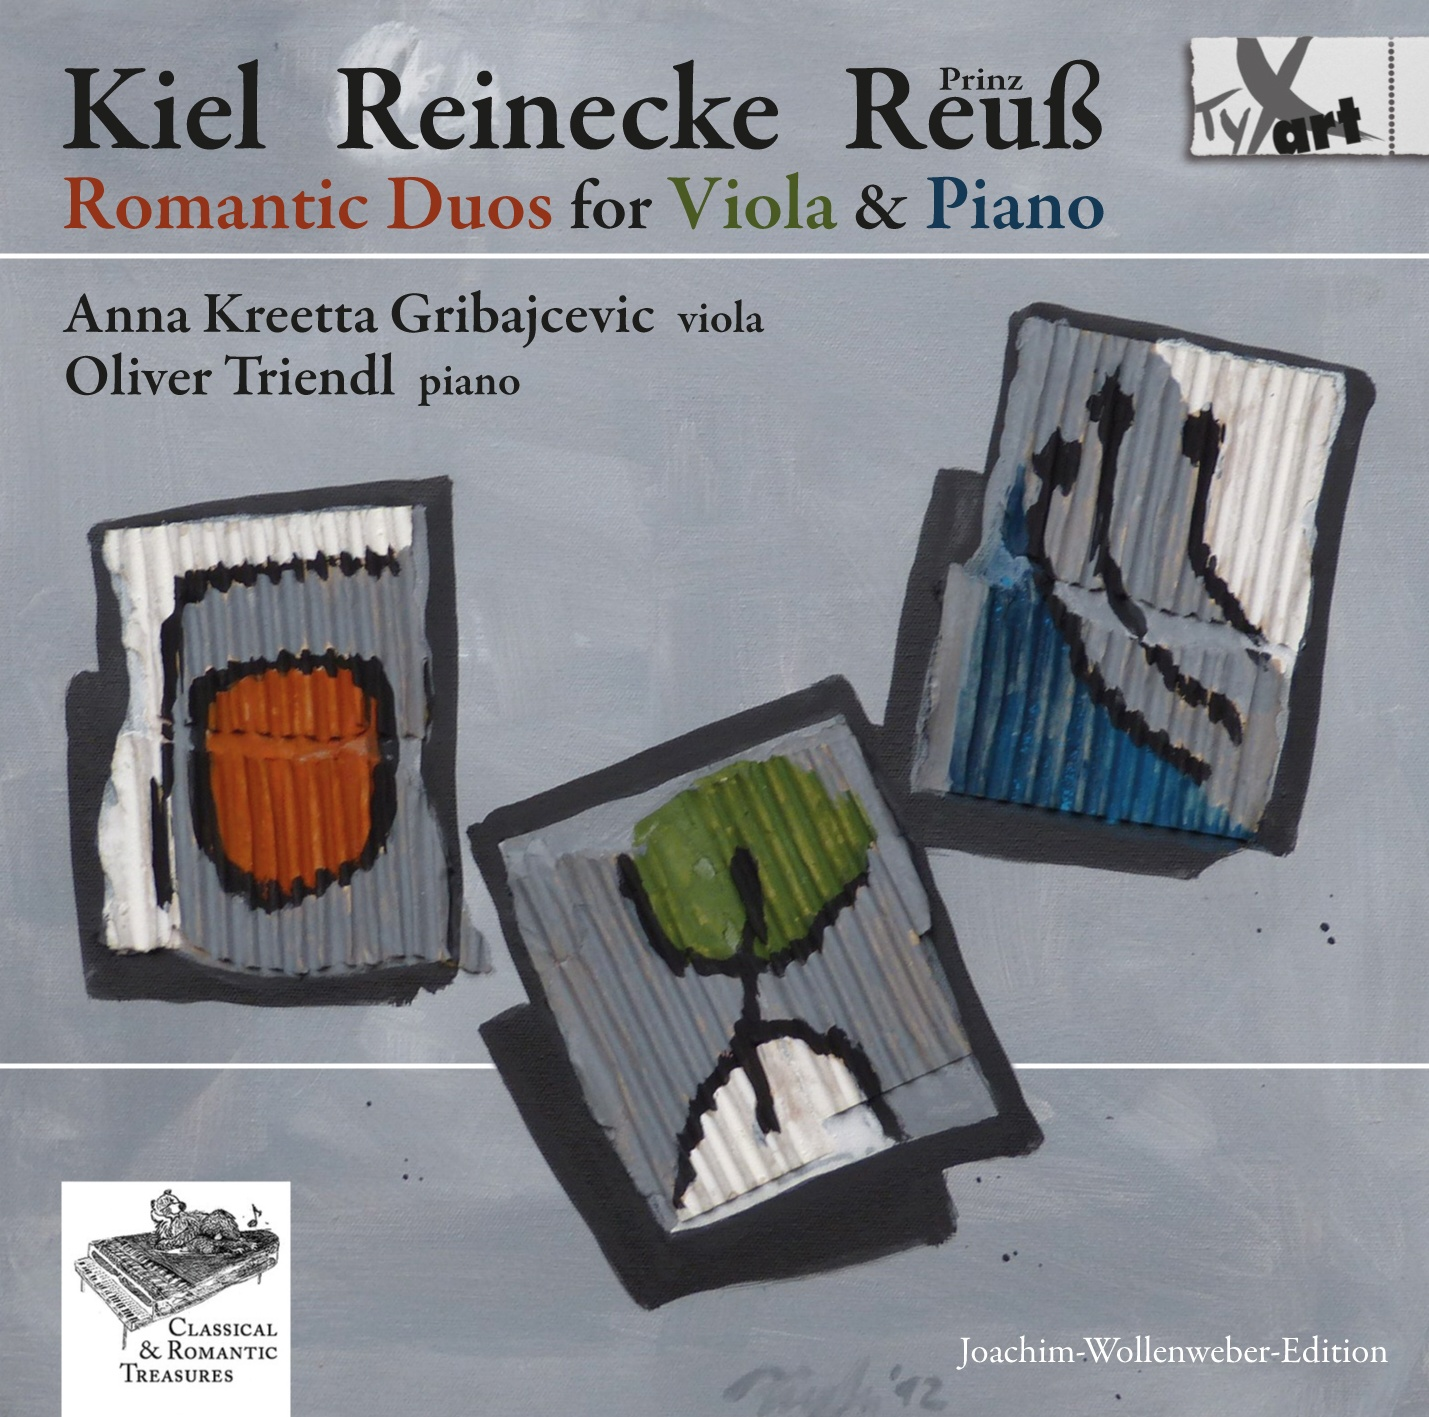 Kiel - Reinecke - Prince Reuss - Romantic Duos for Viola & Piano